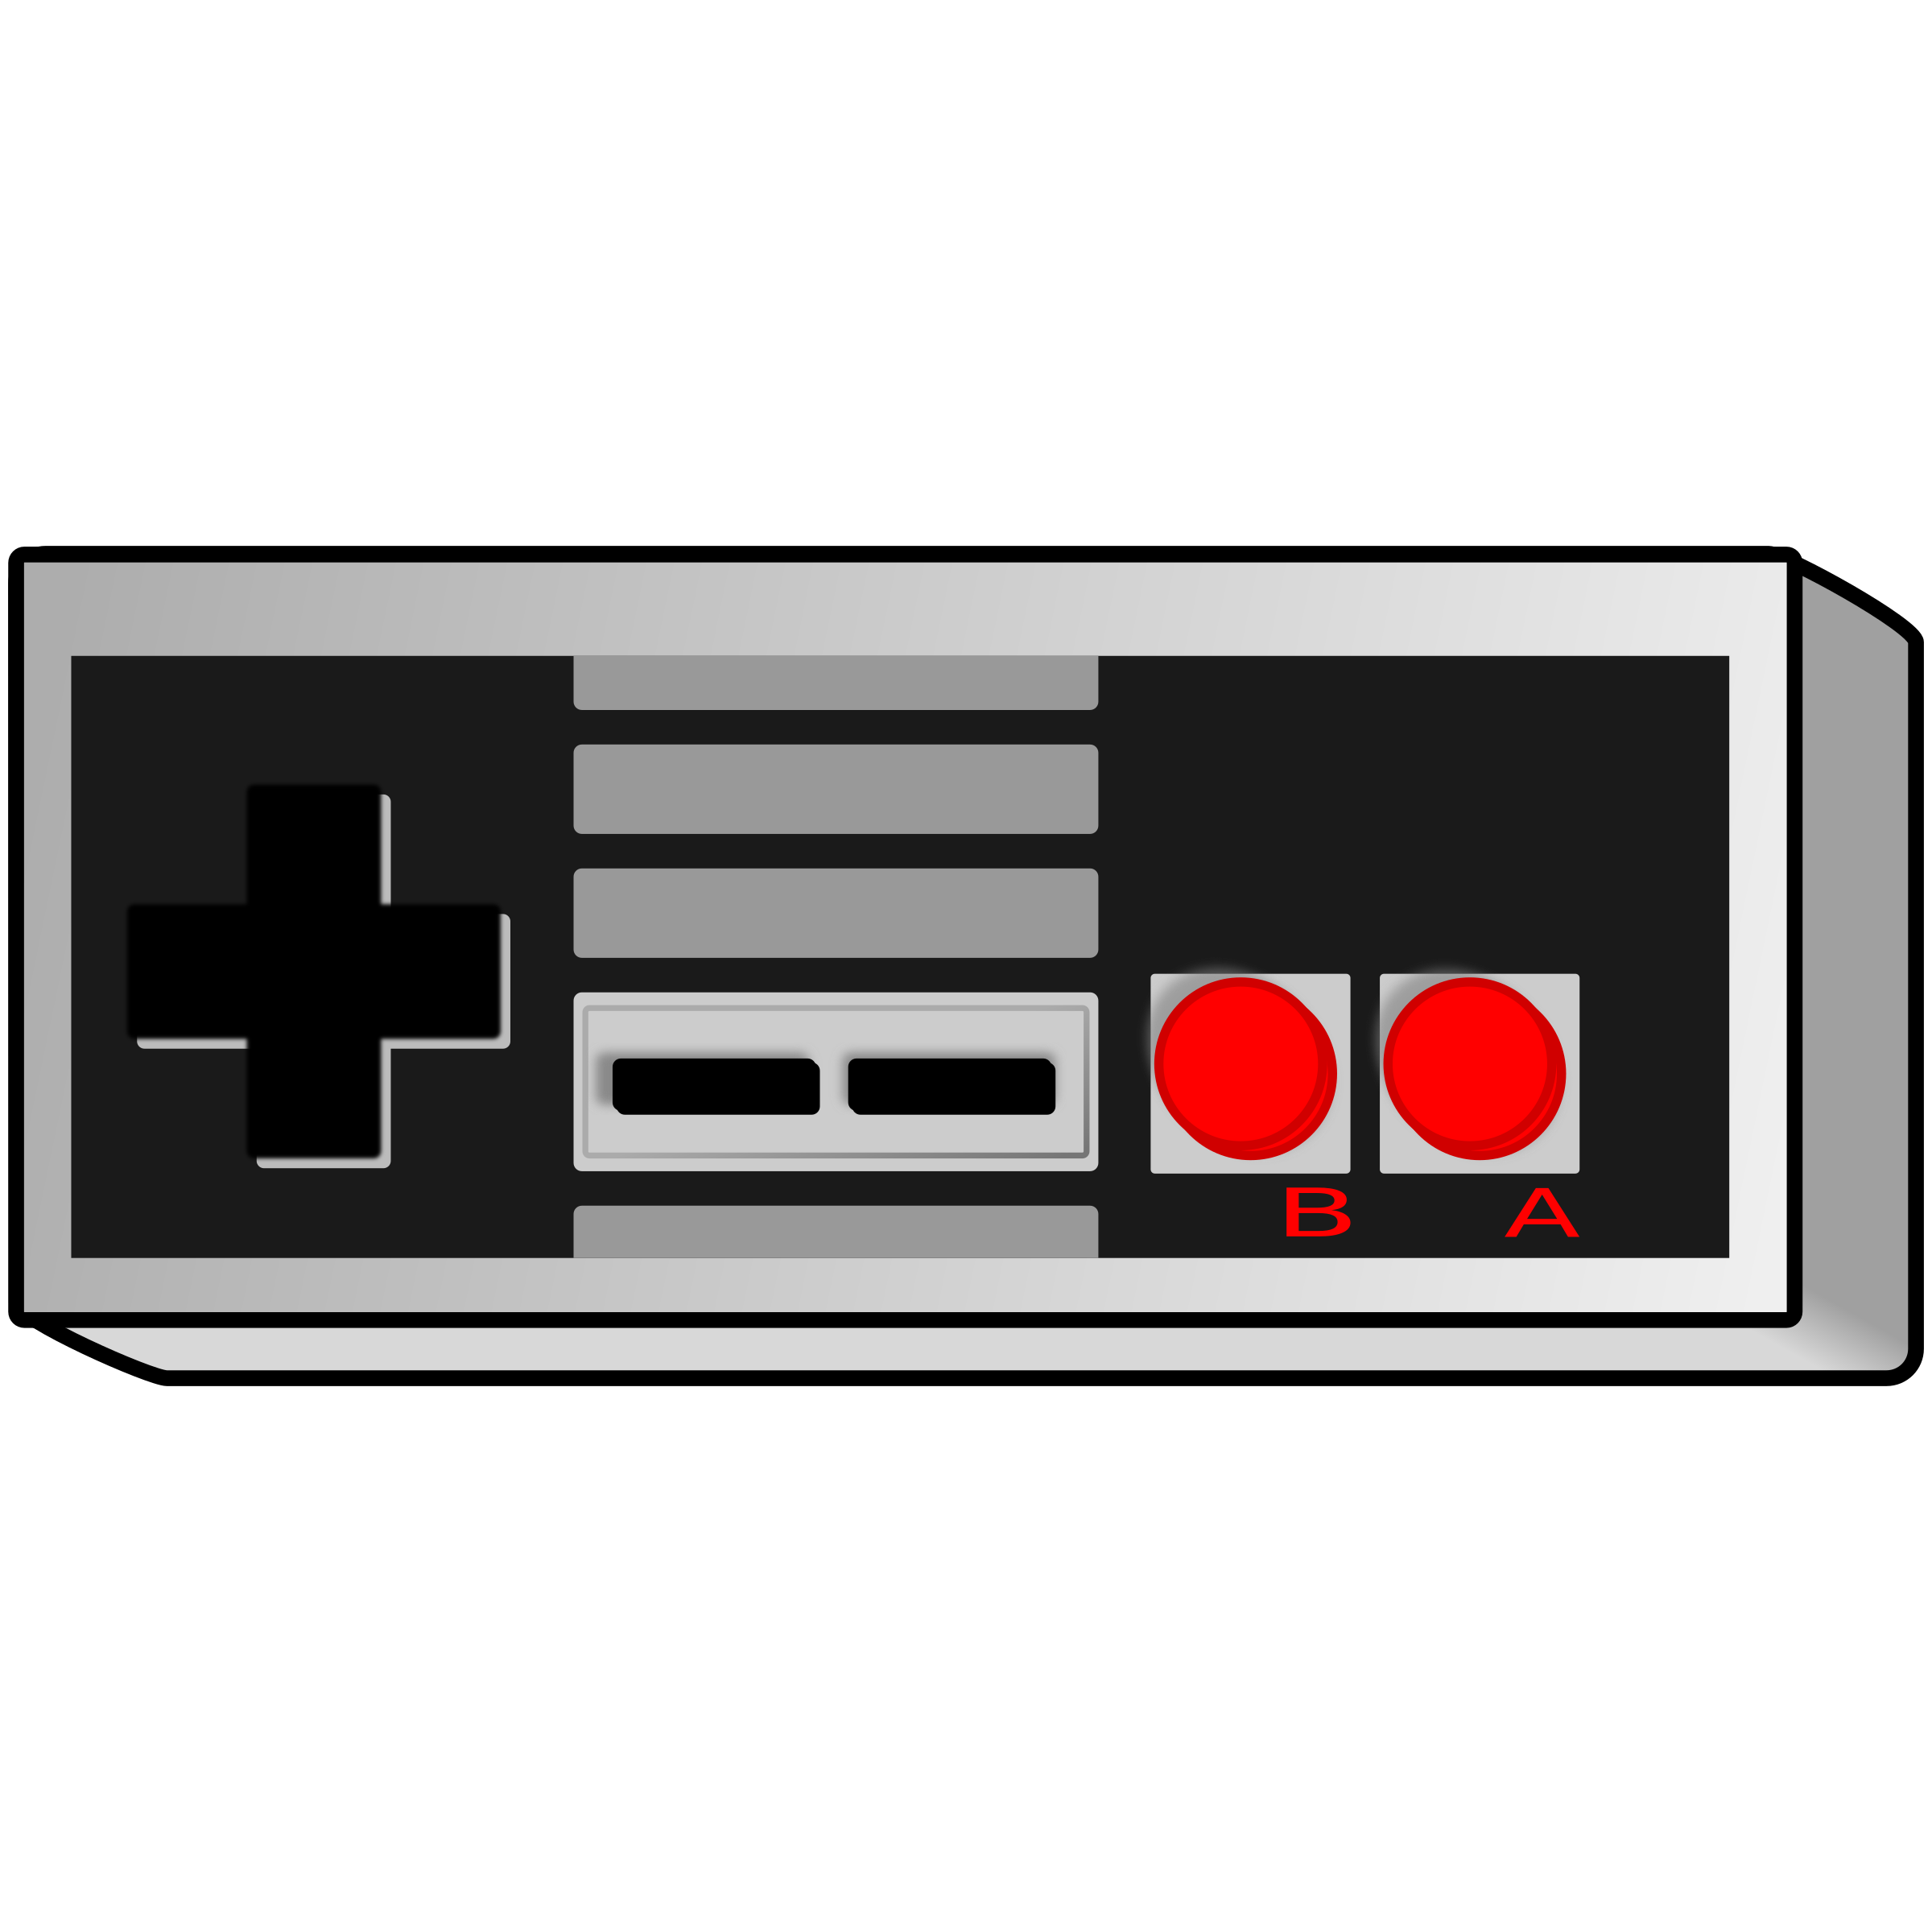 Controller clipart old school Clipart Game Old School Controller